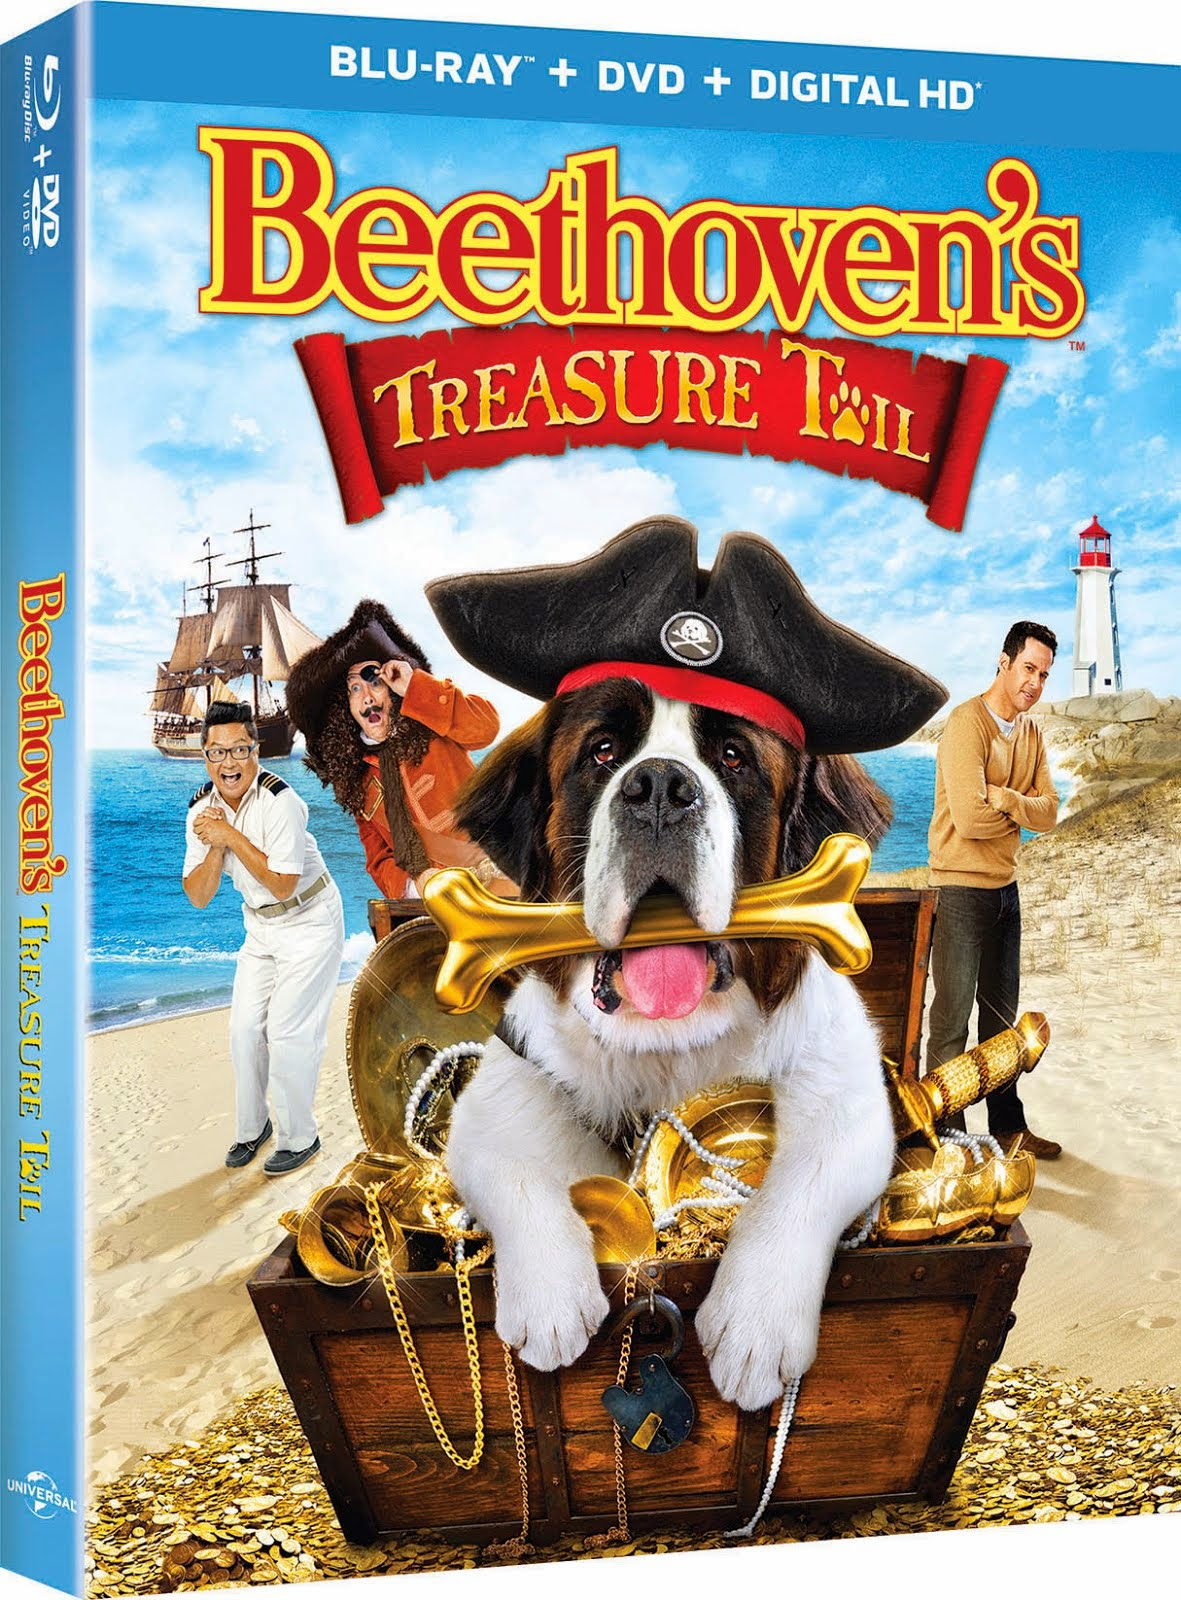 BEETHOVEN'S TREASURE TRAIL ($26.98 value) 10 Winners. On Blu-ray & DVD. Through 11/8.